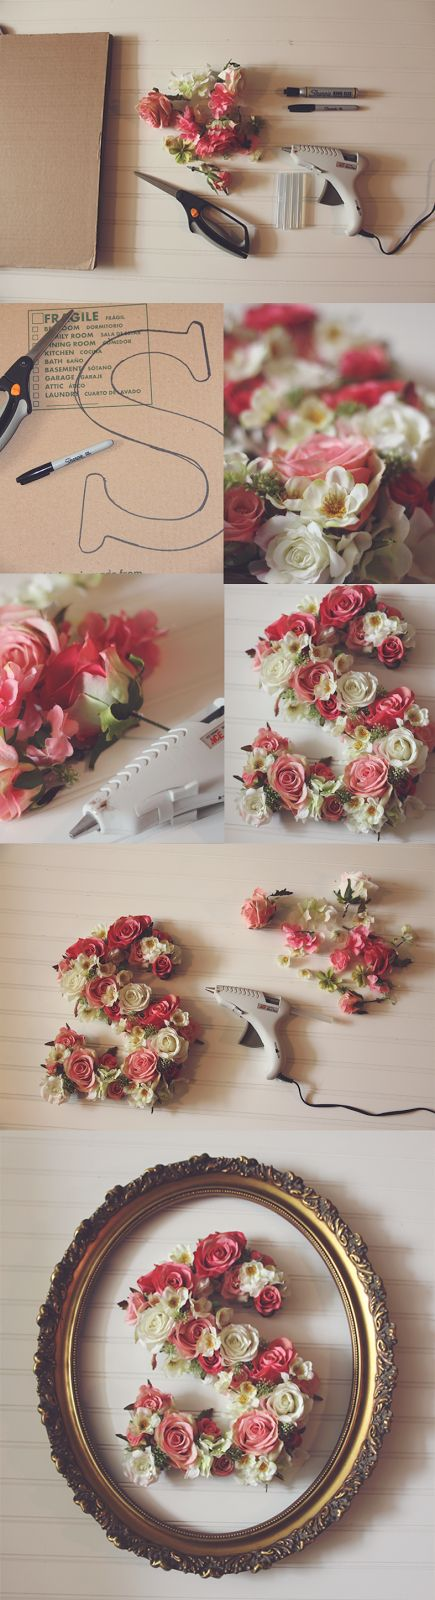 Ridiculously gorgeous DIY floral lettering. Check out the website, some girl tried a new diet and tracked her results